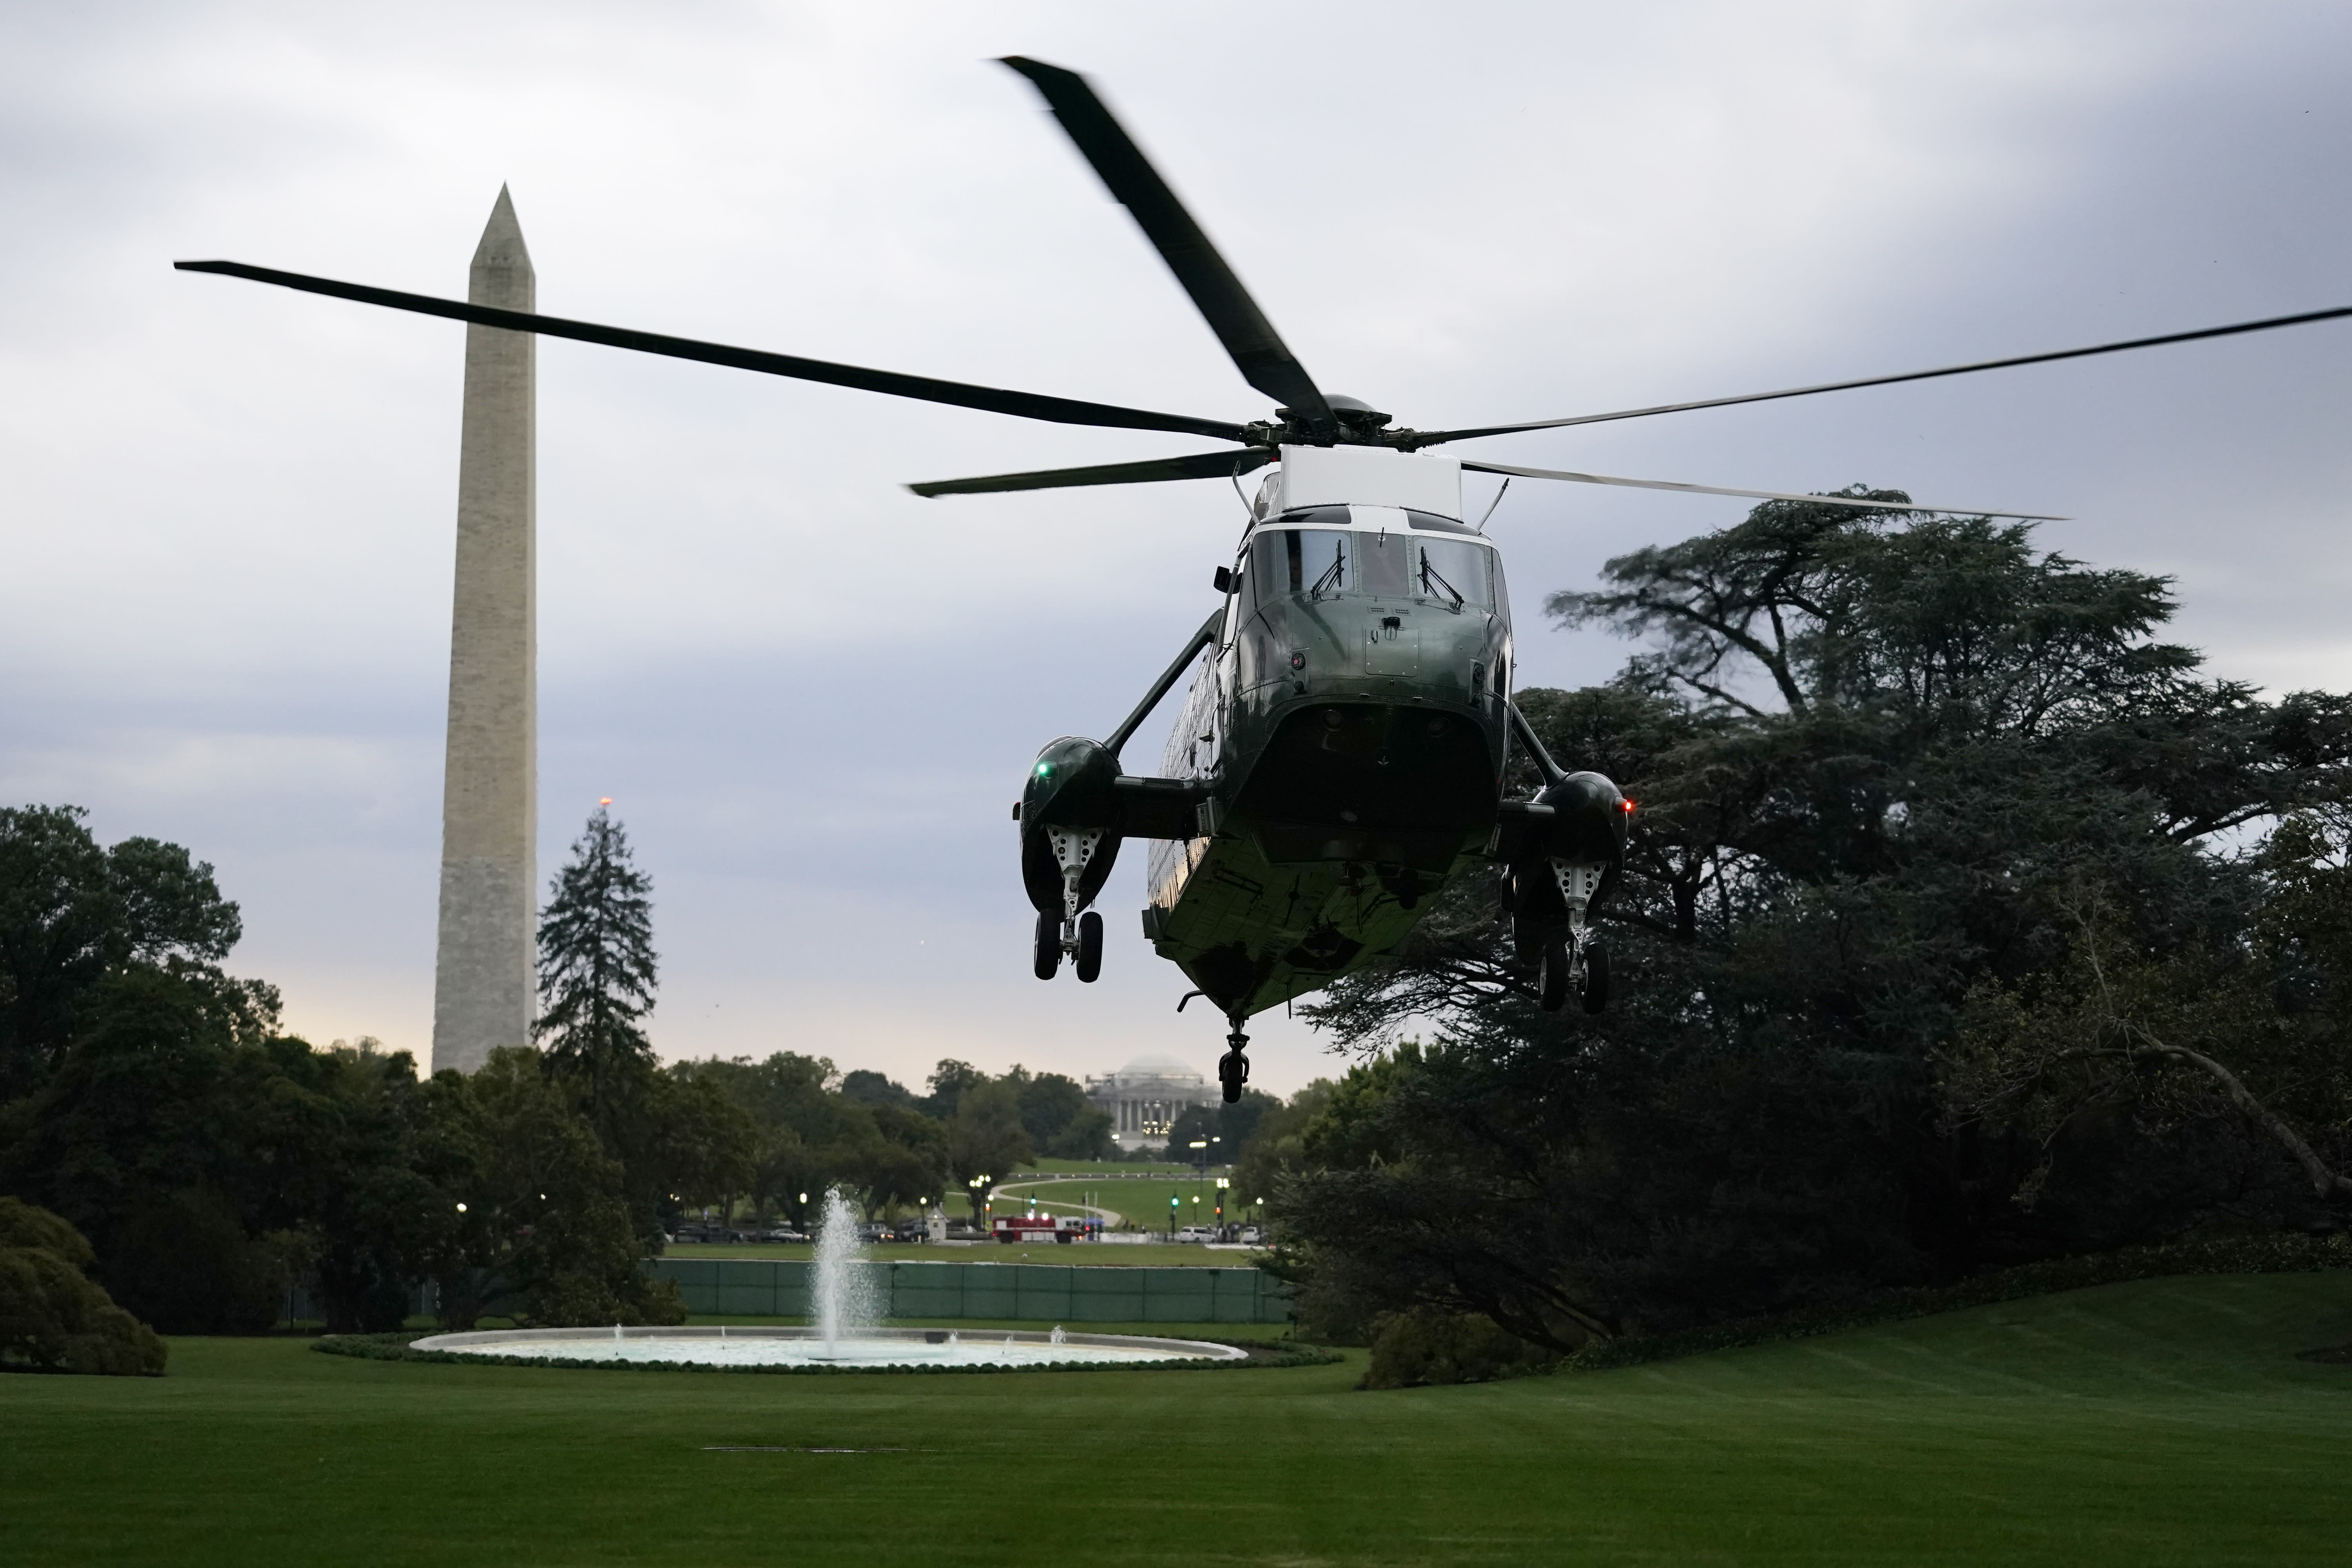 Marine One with President Donald Trump aboard lands on the South Lawn in Washington, Thursday, Oct. 1, 2020, as Trump returns from Bedminster, N.J. (AP Photo/Carolyn Kaster)